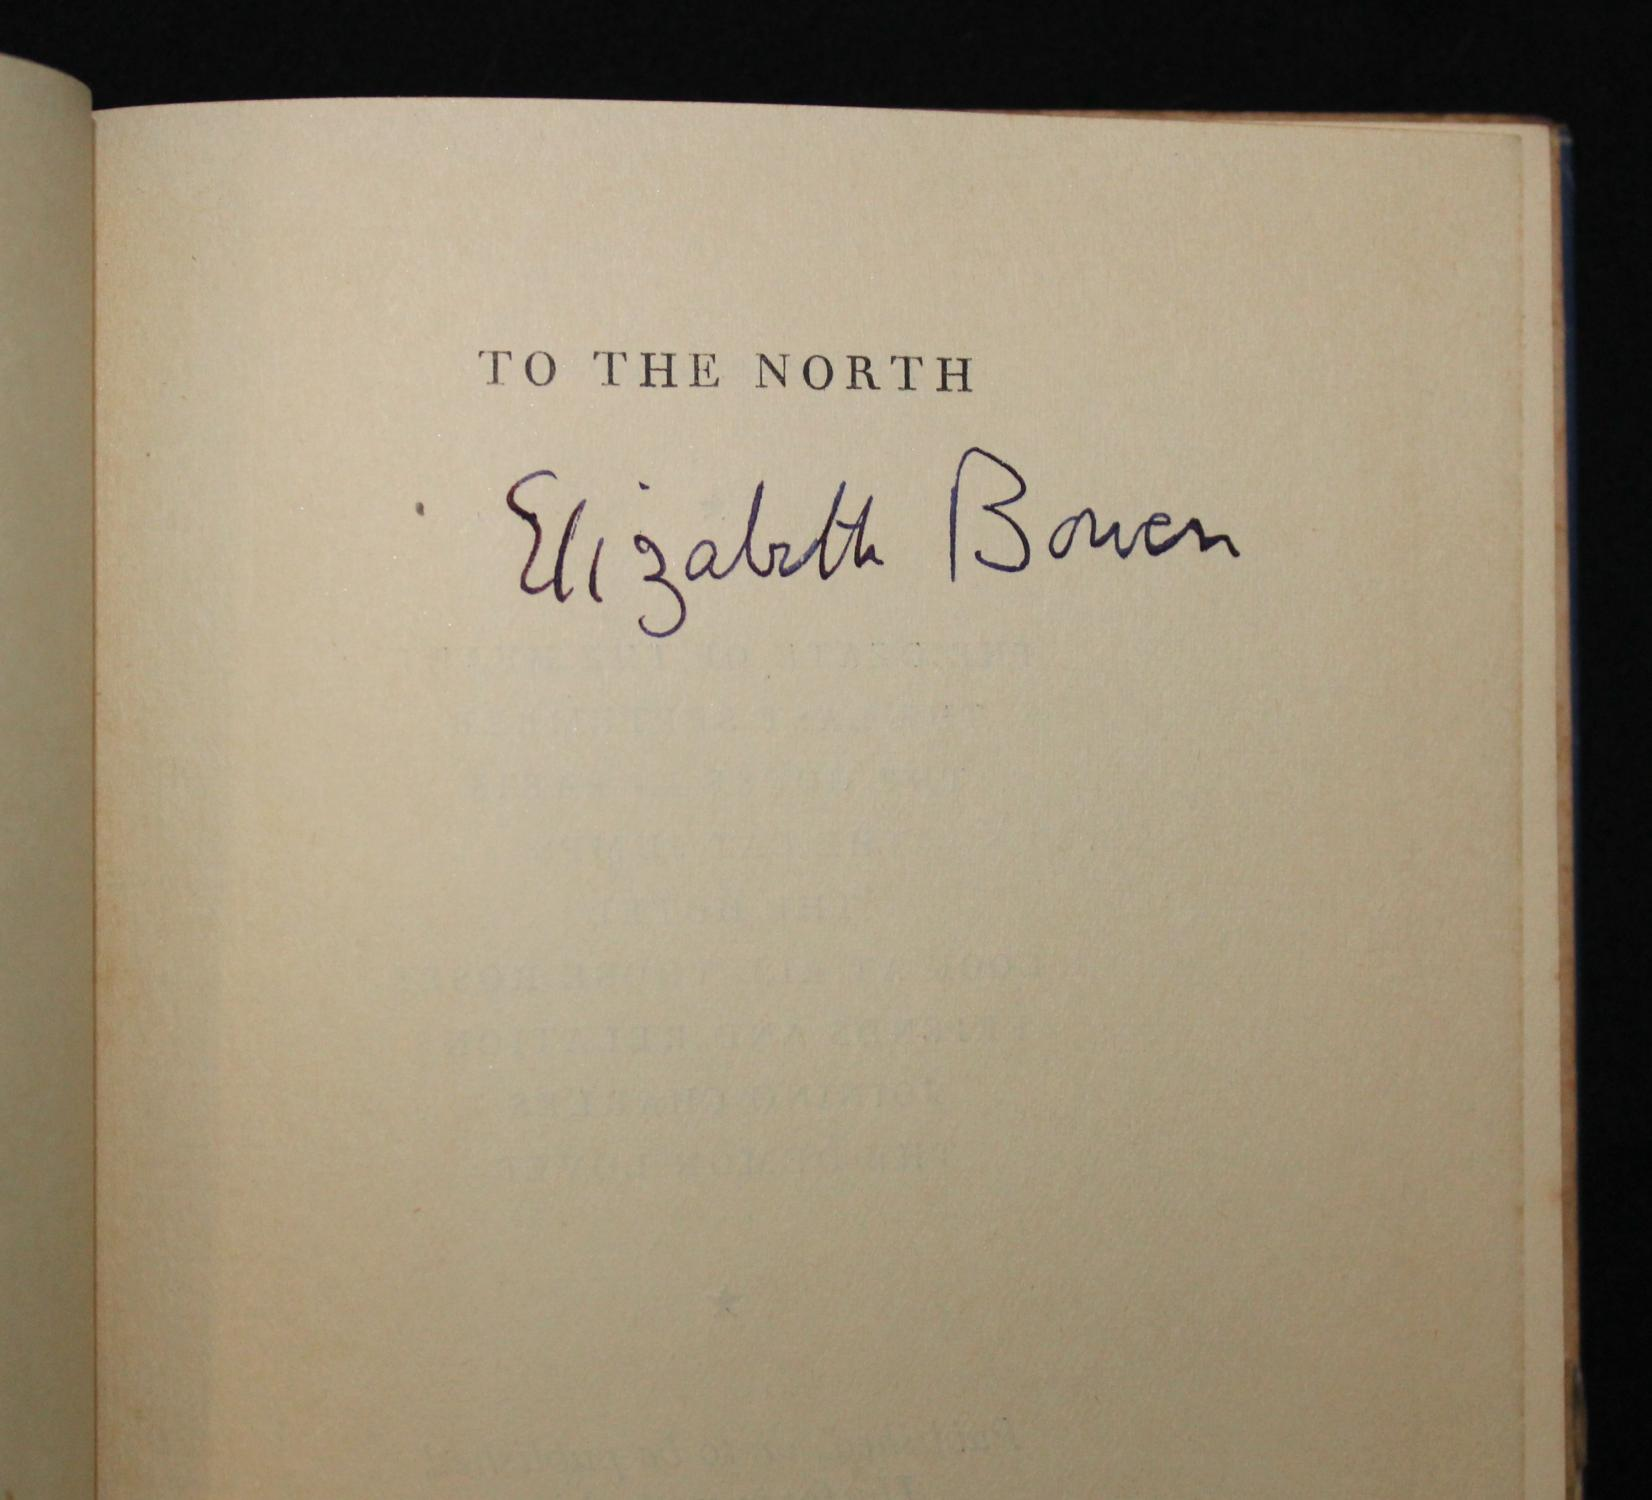 ... TO THE NORTH (Signed): Elizabeth Bowen